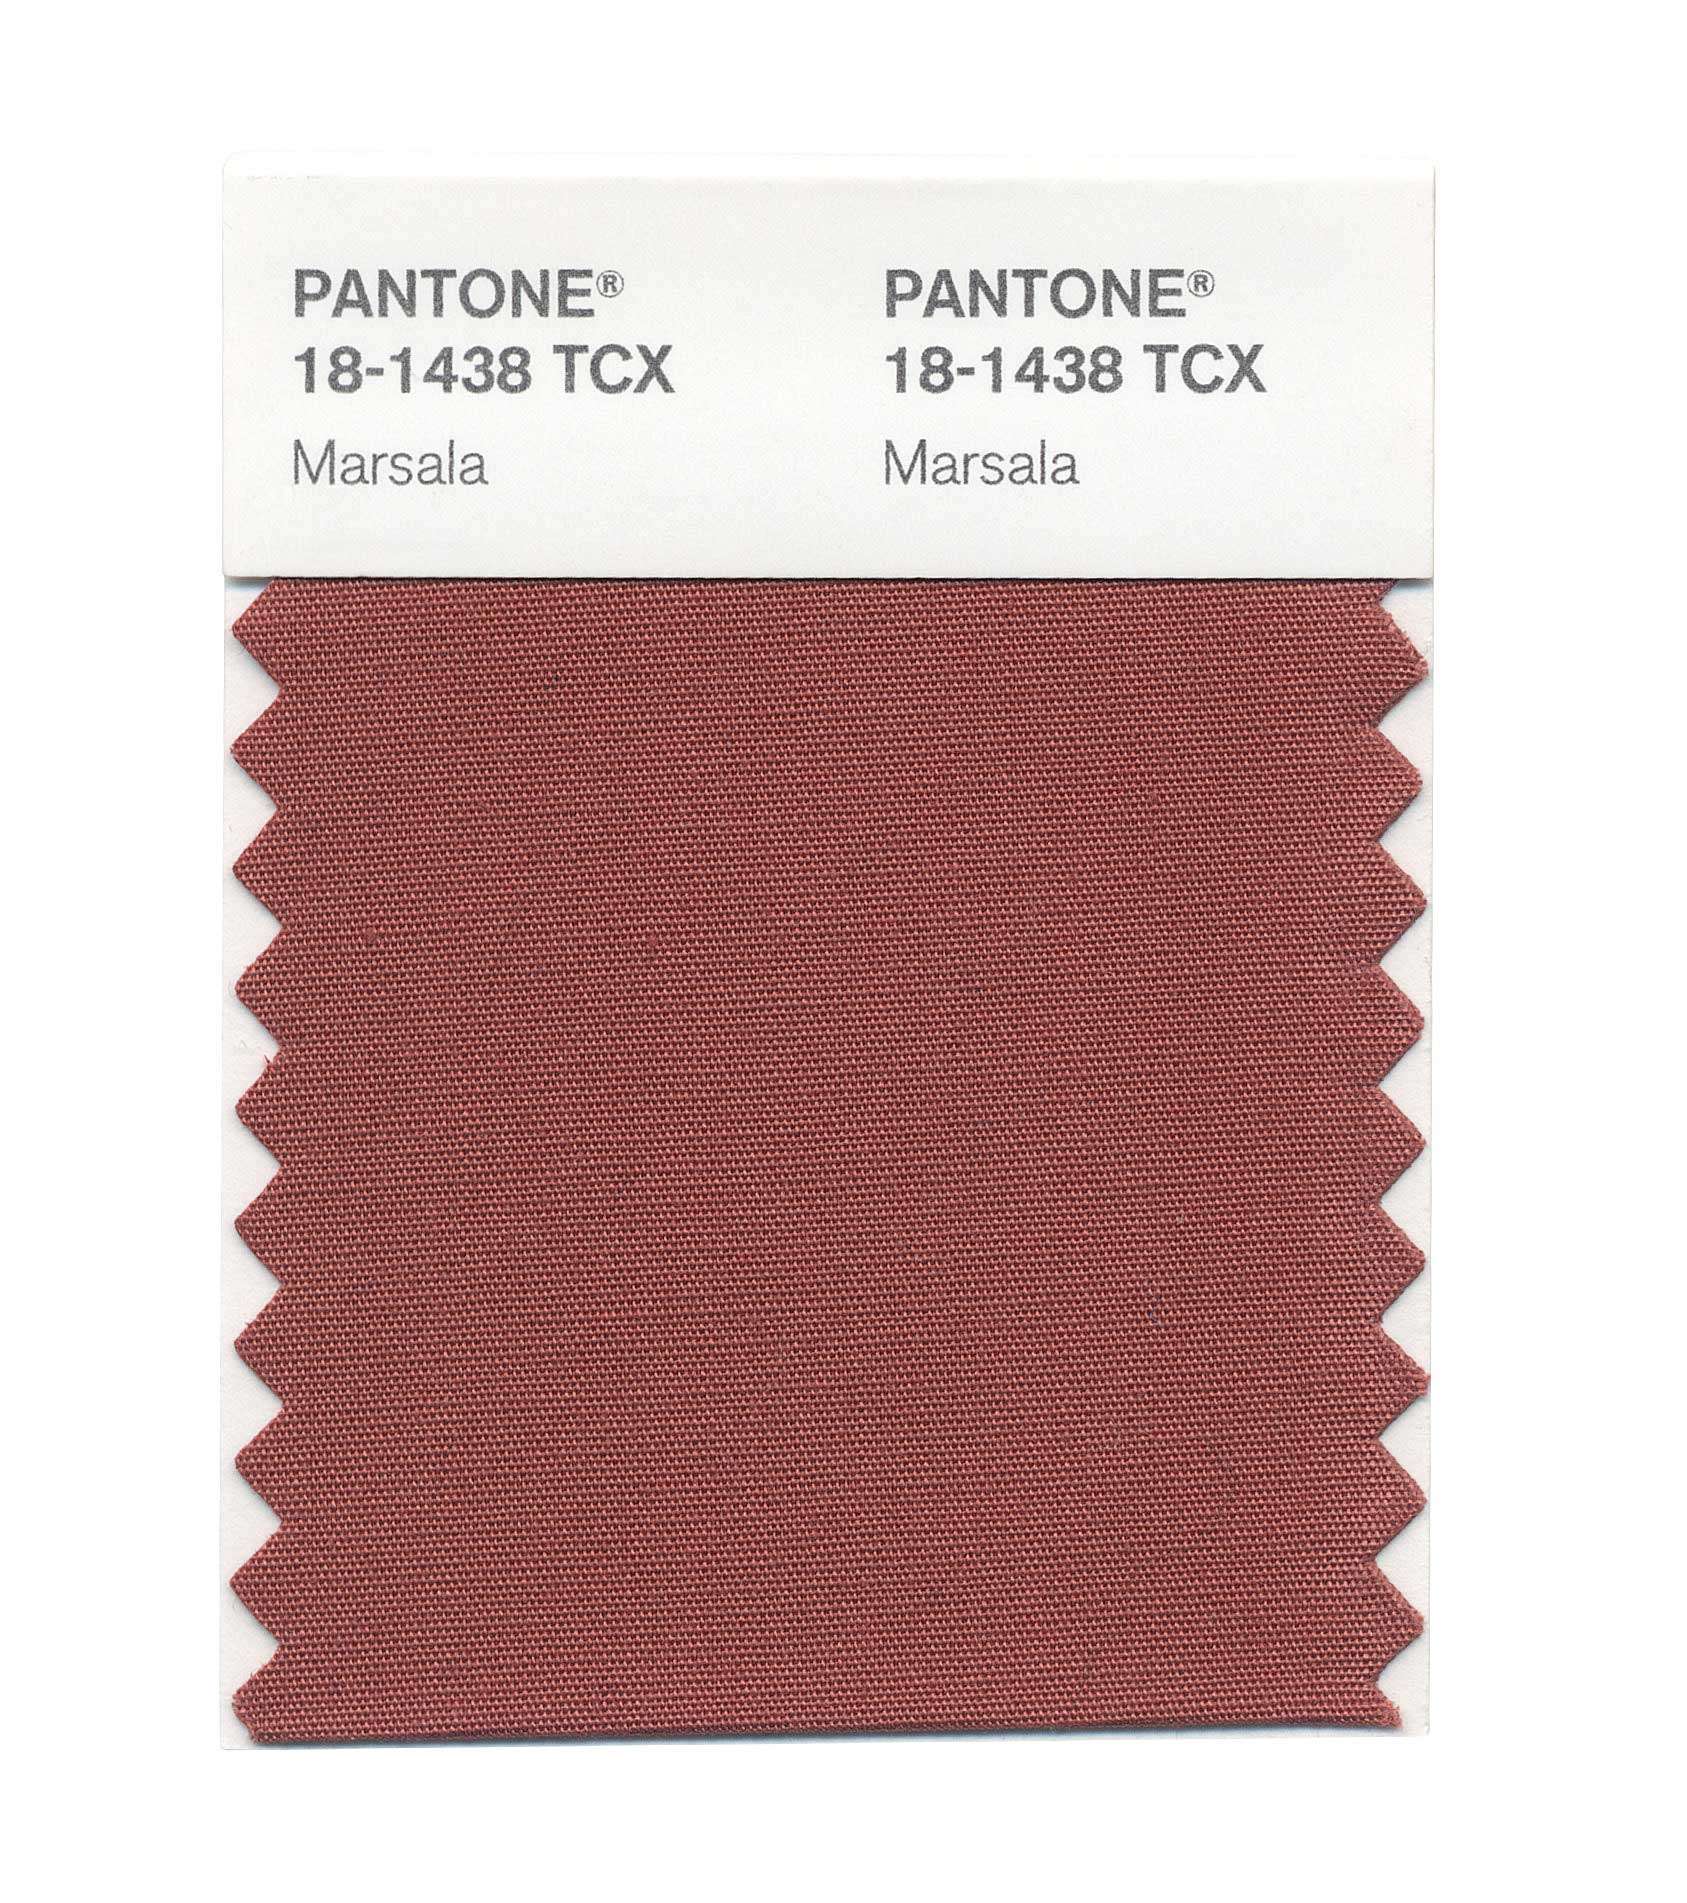 Pantone-Color-of-the-Year-2015-18-1438-Marsala-mini-Swatch-card